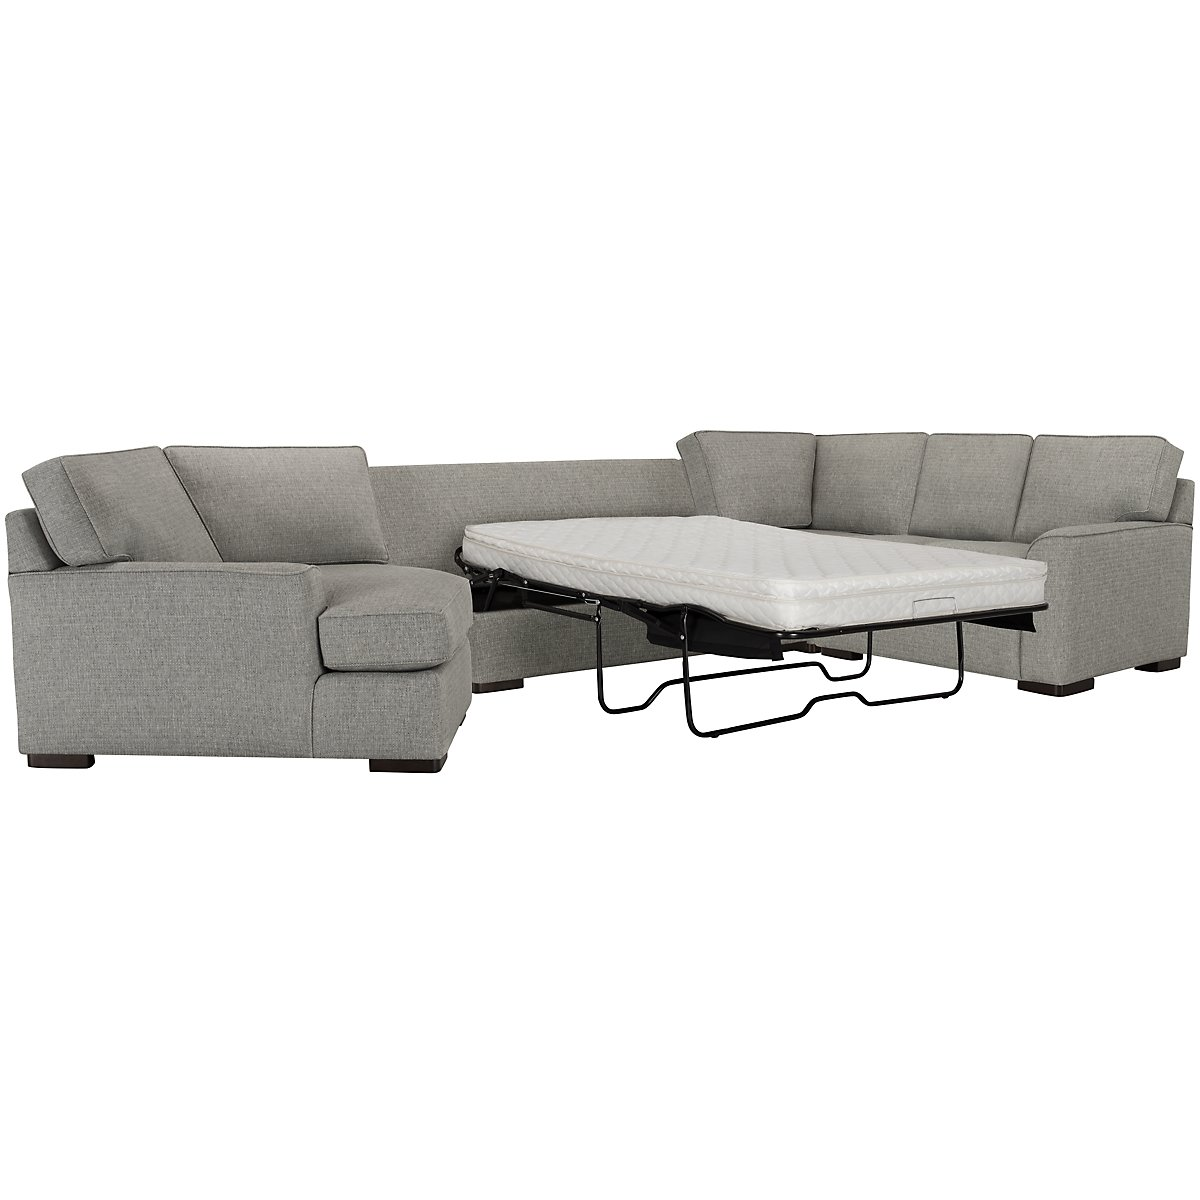 Austin Gray Fabric Left Cuddler Innerspring Sleeper Sectional